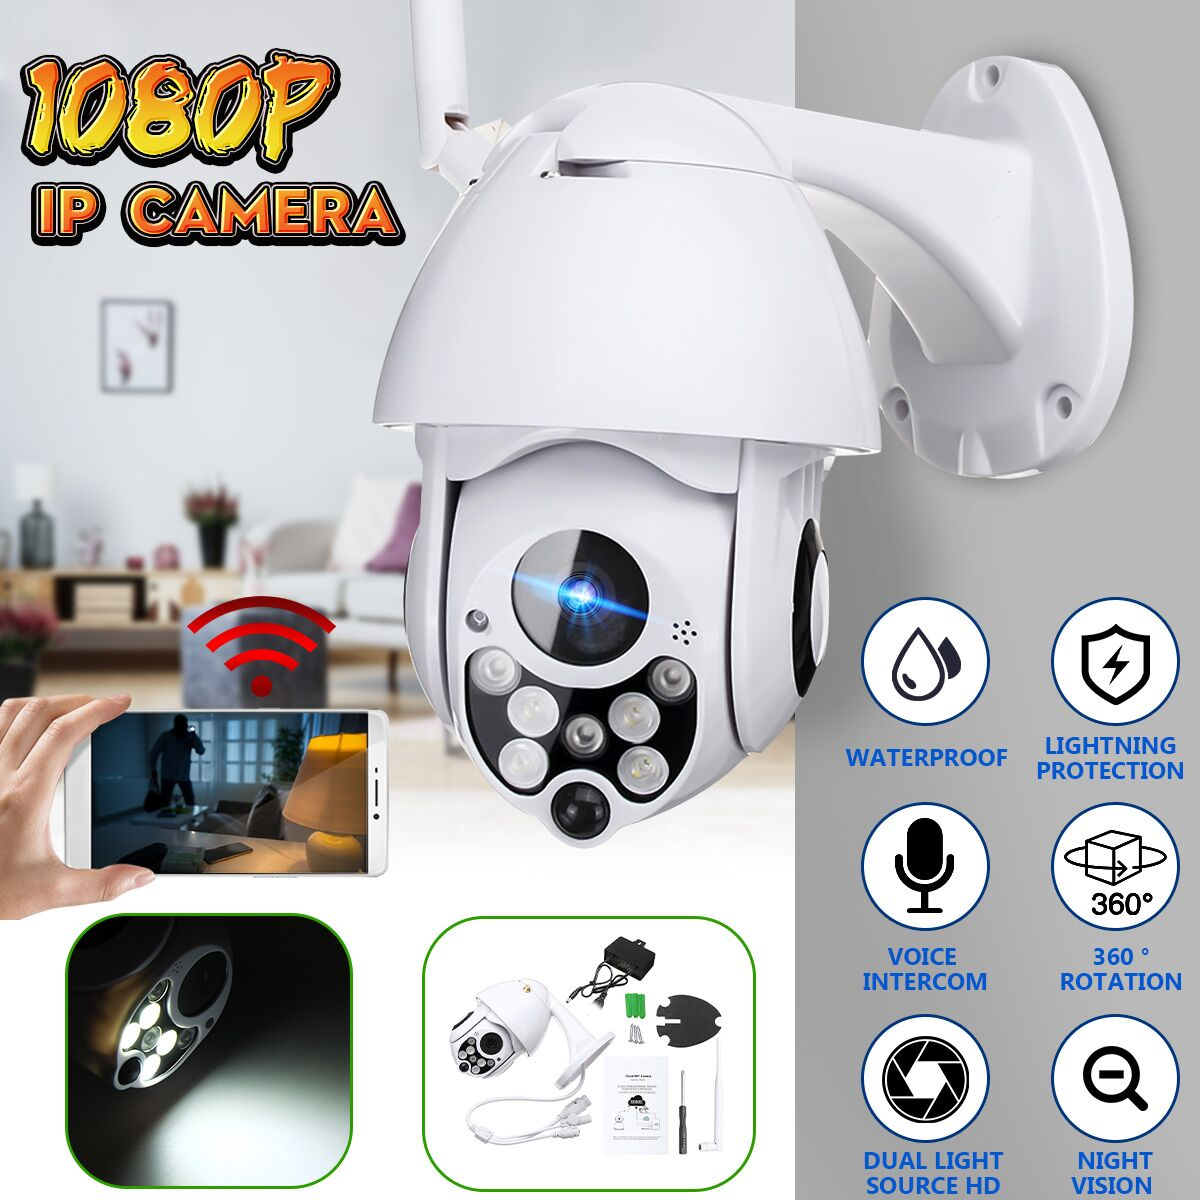 HD 1080P 2MP WiFi IP Camera Cloud Wireless Security Video CCTV Camera for Home Outdoor Remote IR MonitorHD 1080P 2MP WiFi IP Camera Cloud Wireless Security Video CCTV Camera for Home Outdoor Remote IR Monitor